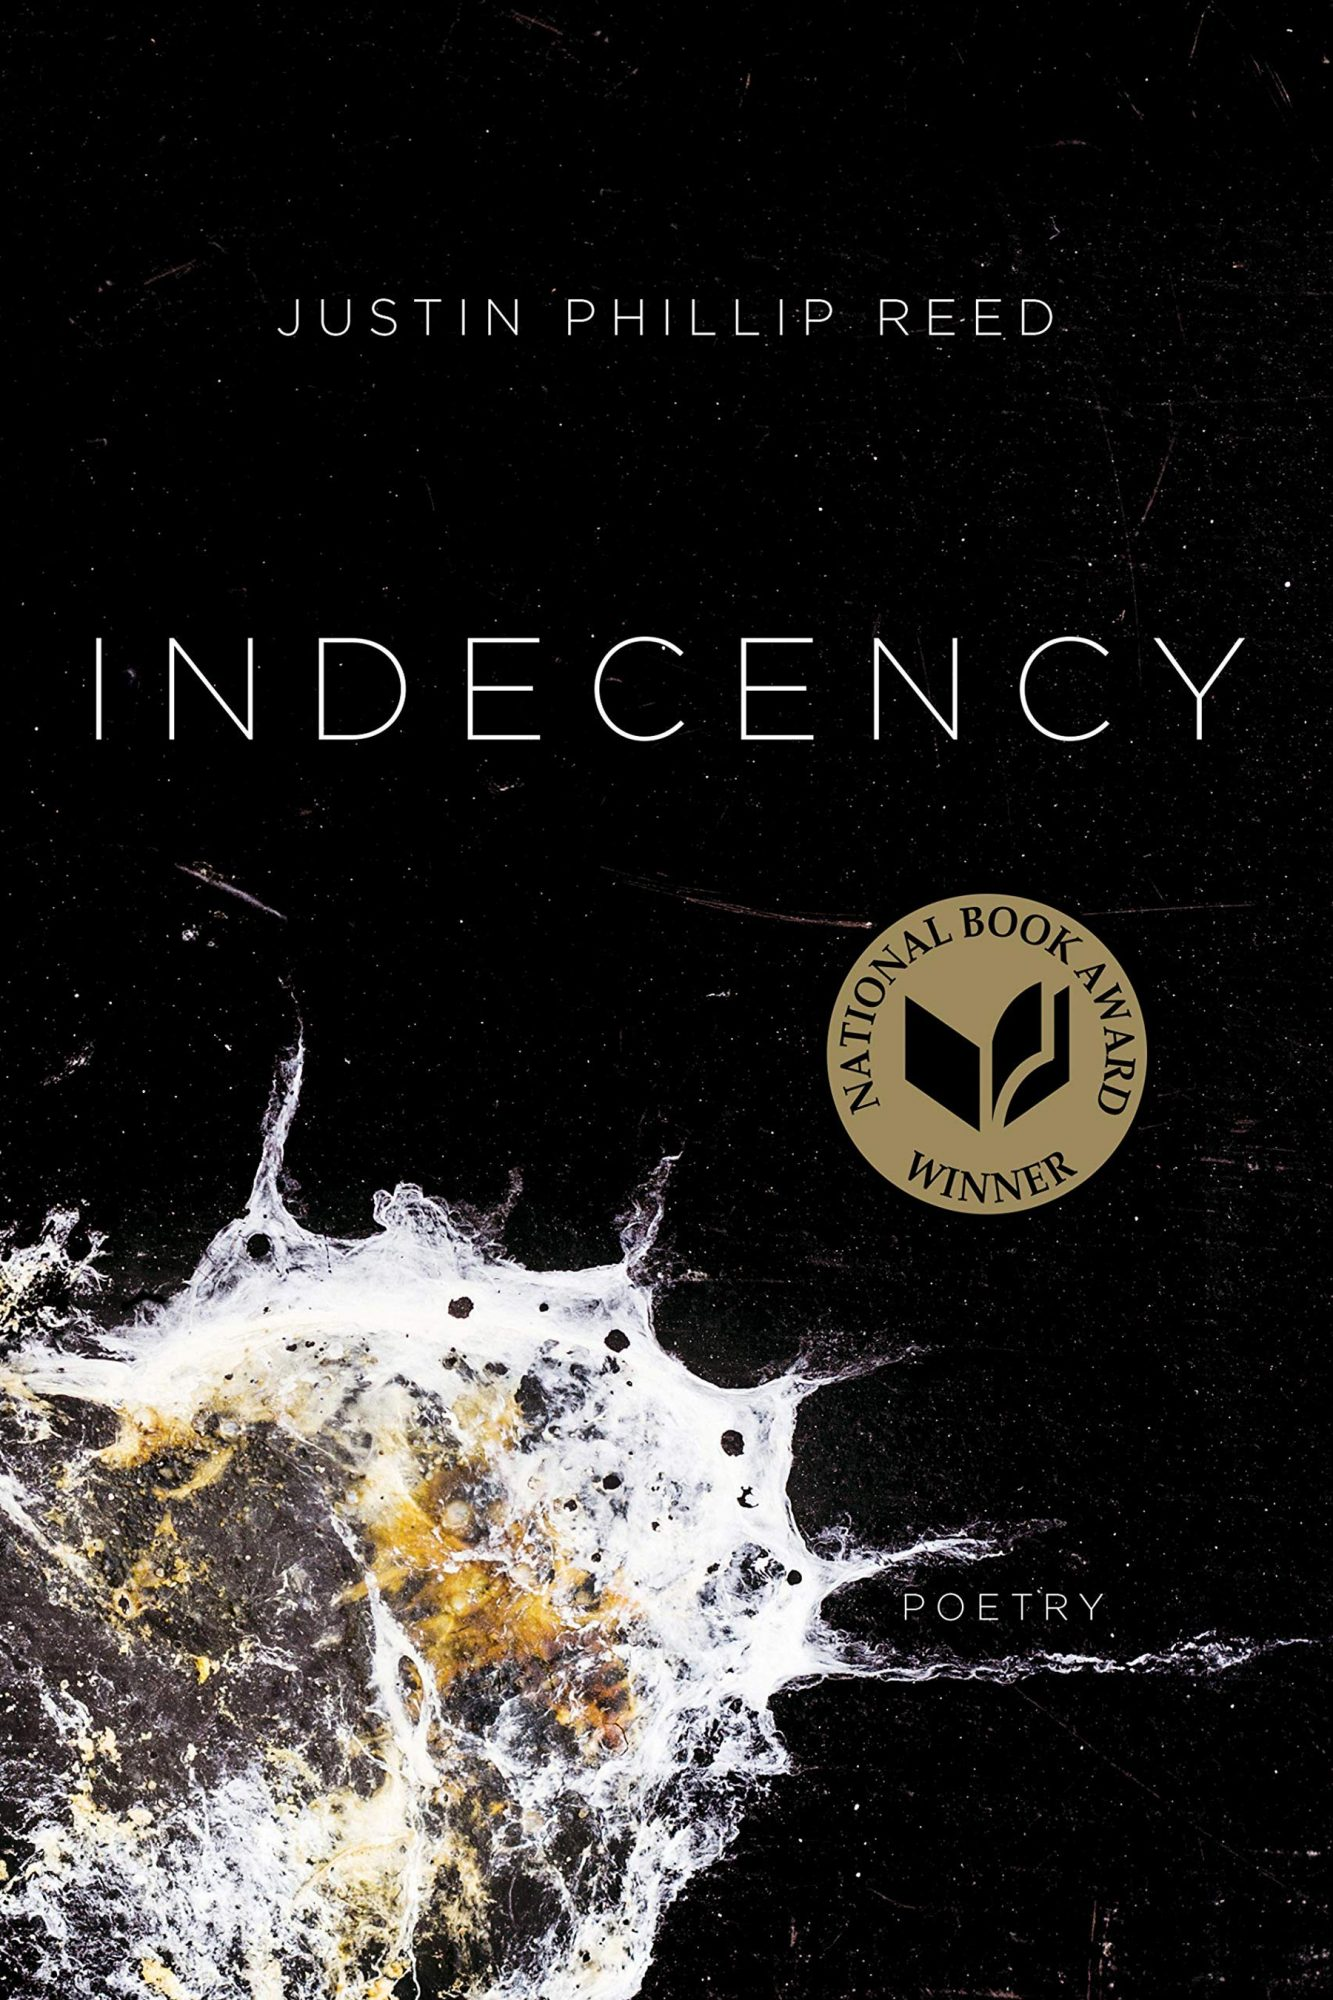 Indecency by JUSTIN PHILLIP REEDPublisher: Coffee House Press